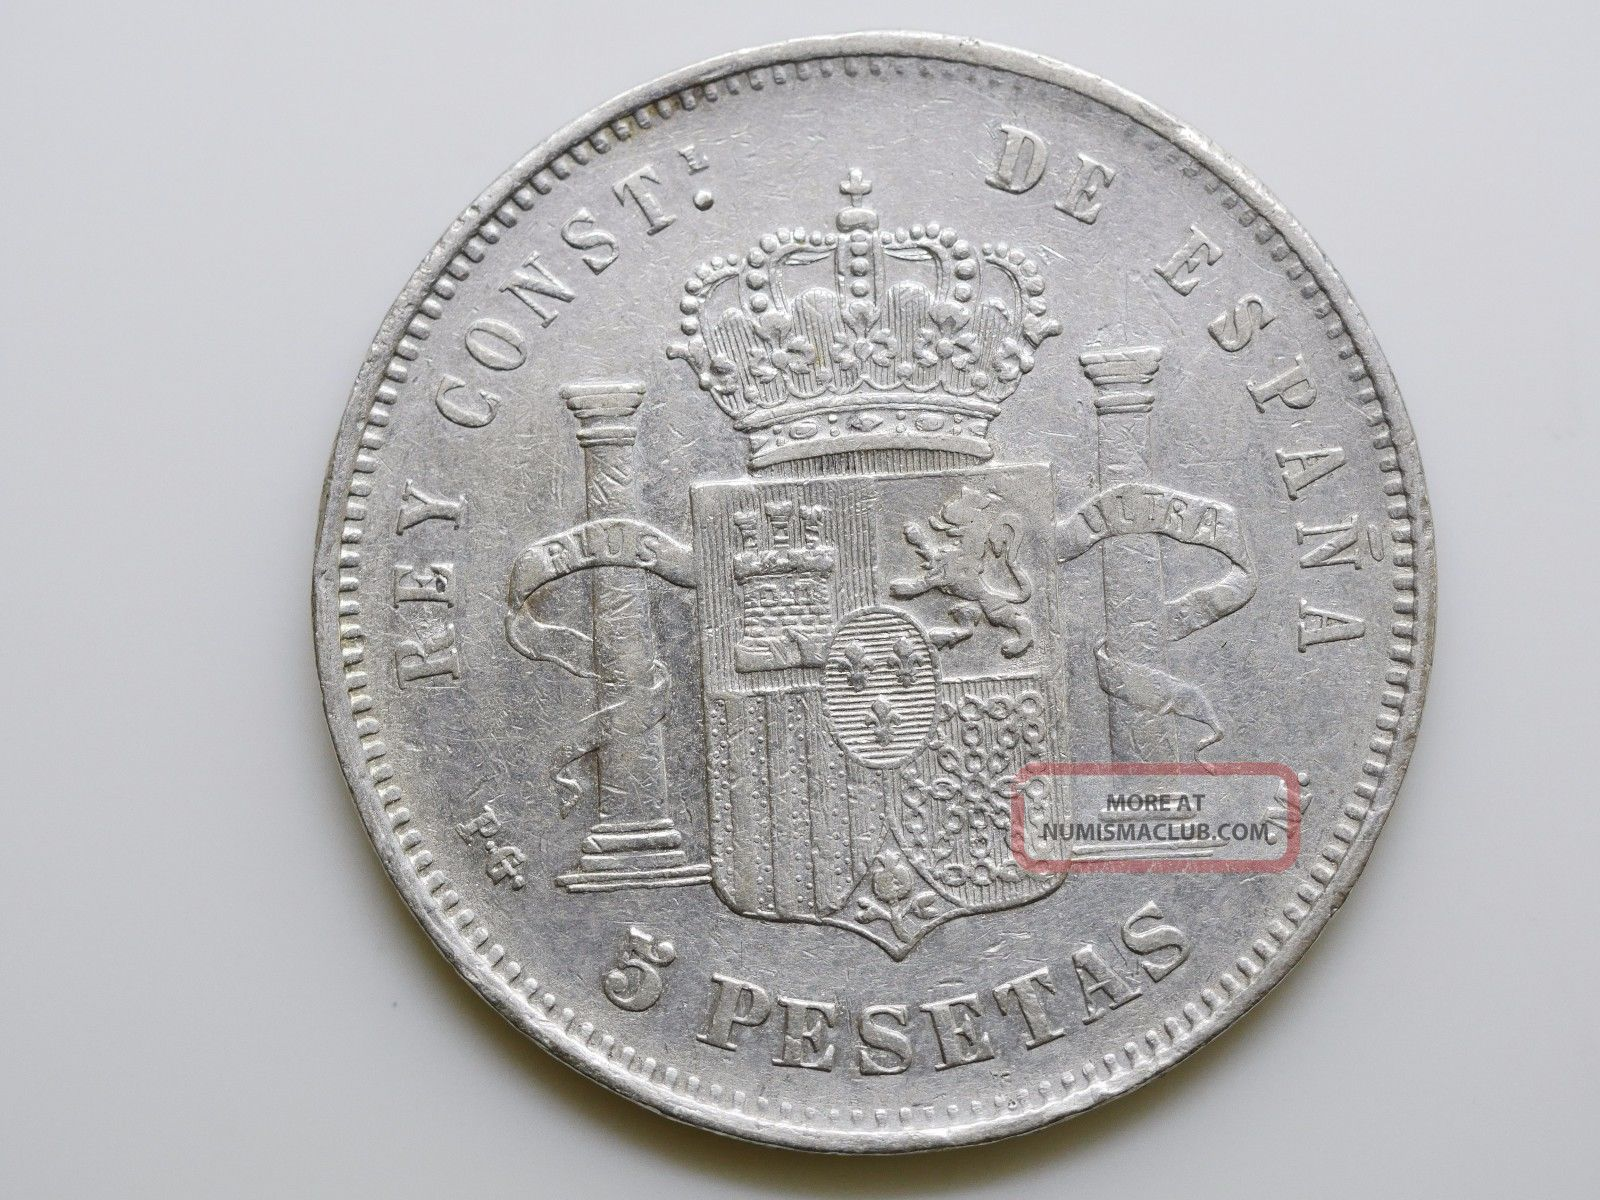 Spain 5 Pesetas Km 689 1892 Silver Coin Europe photo